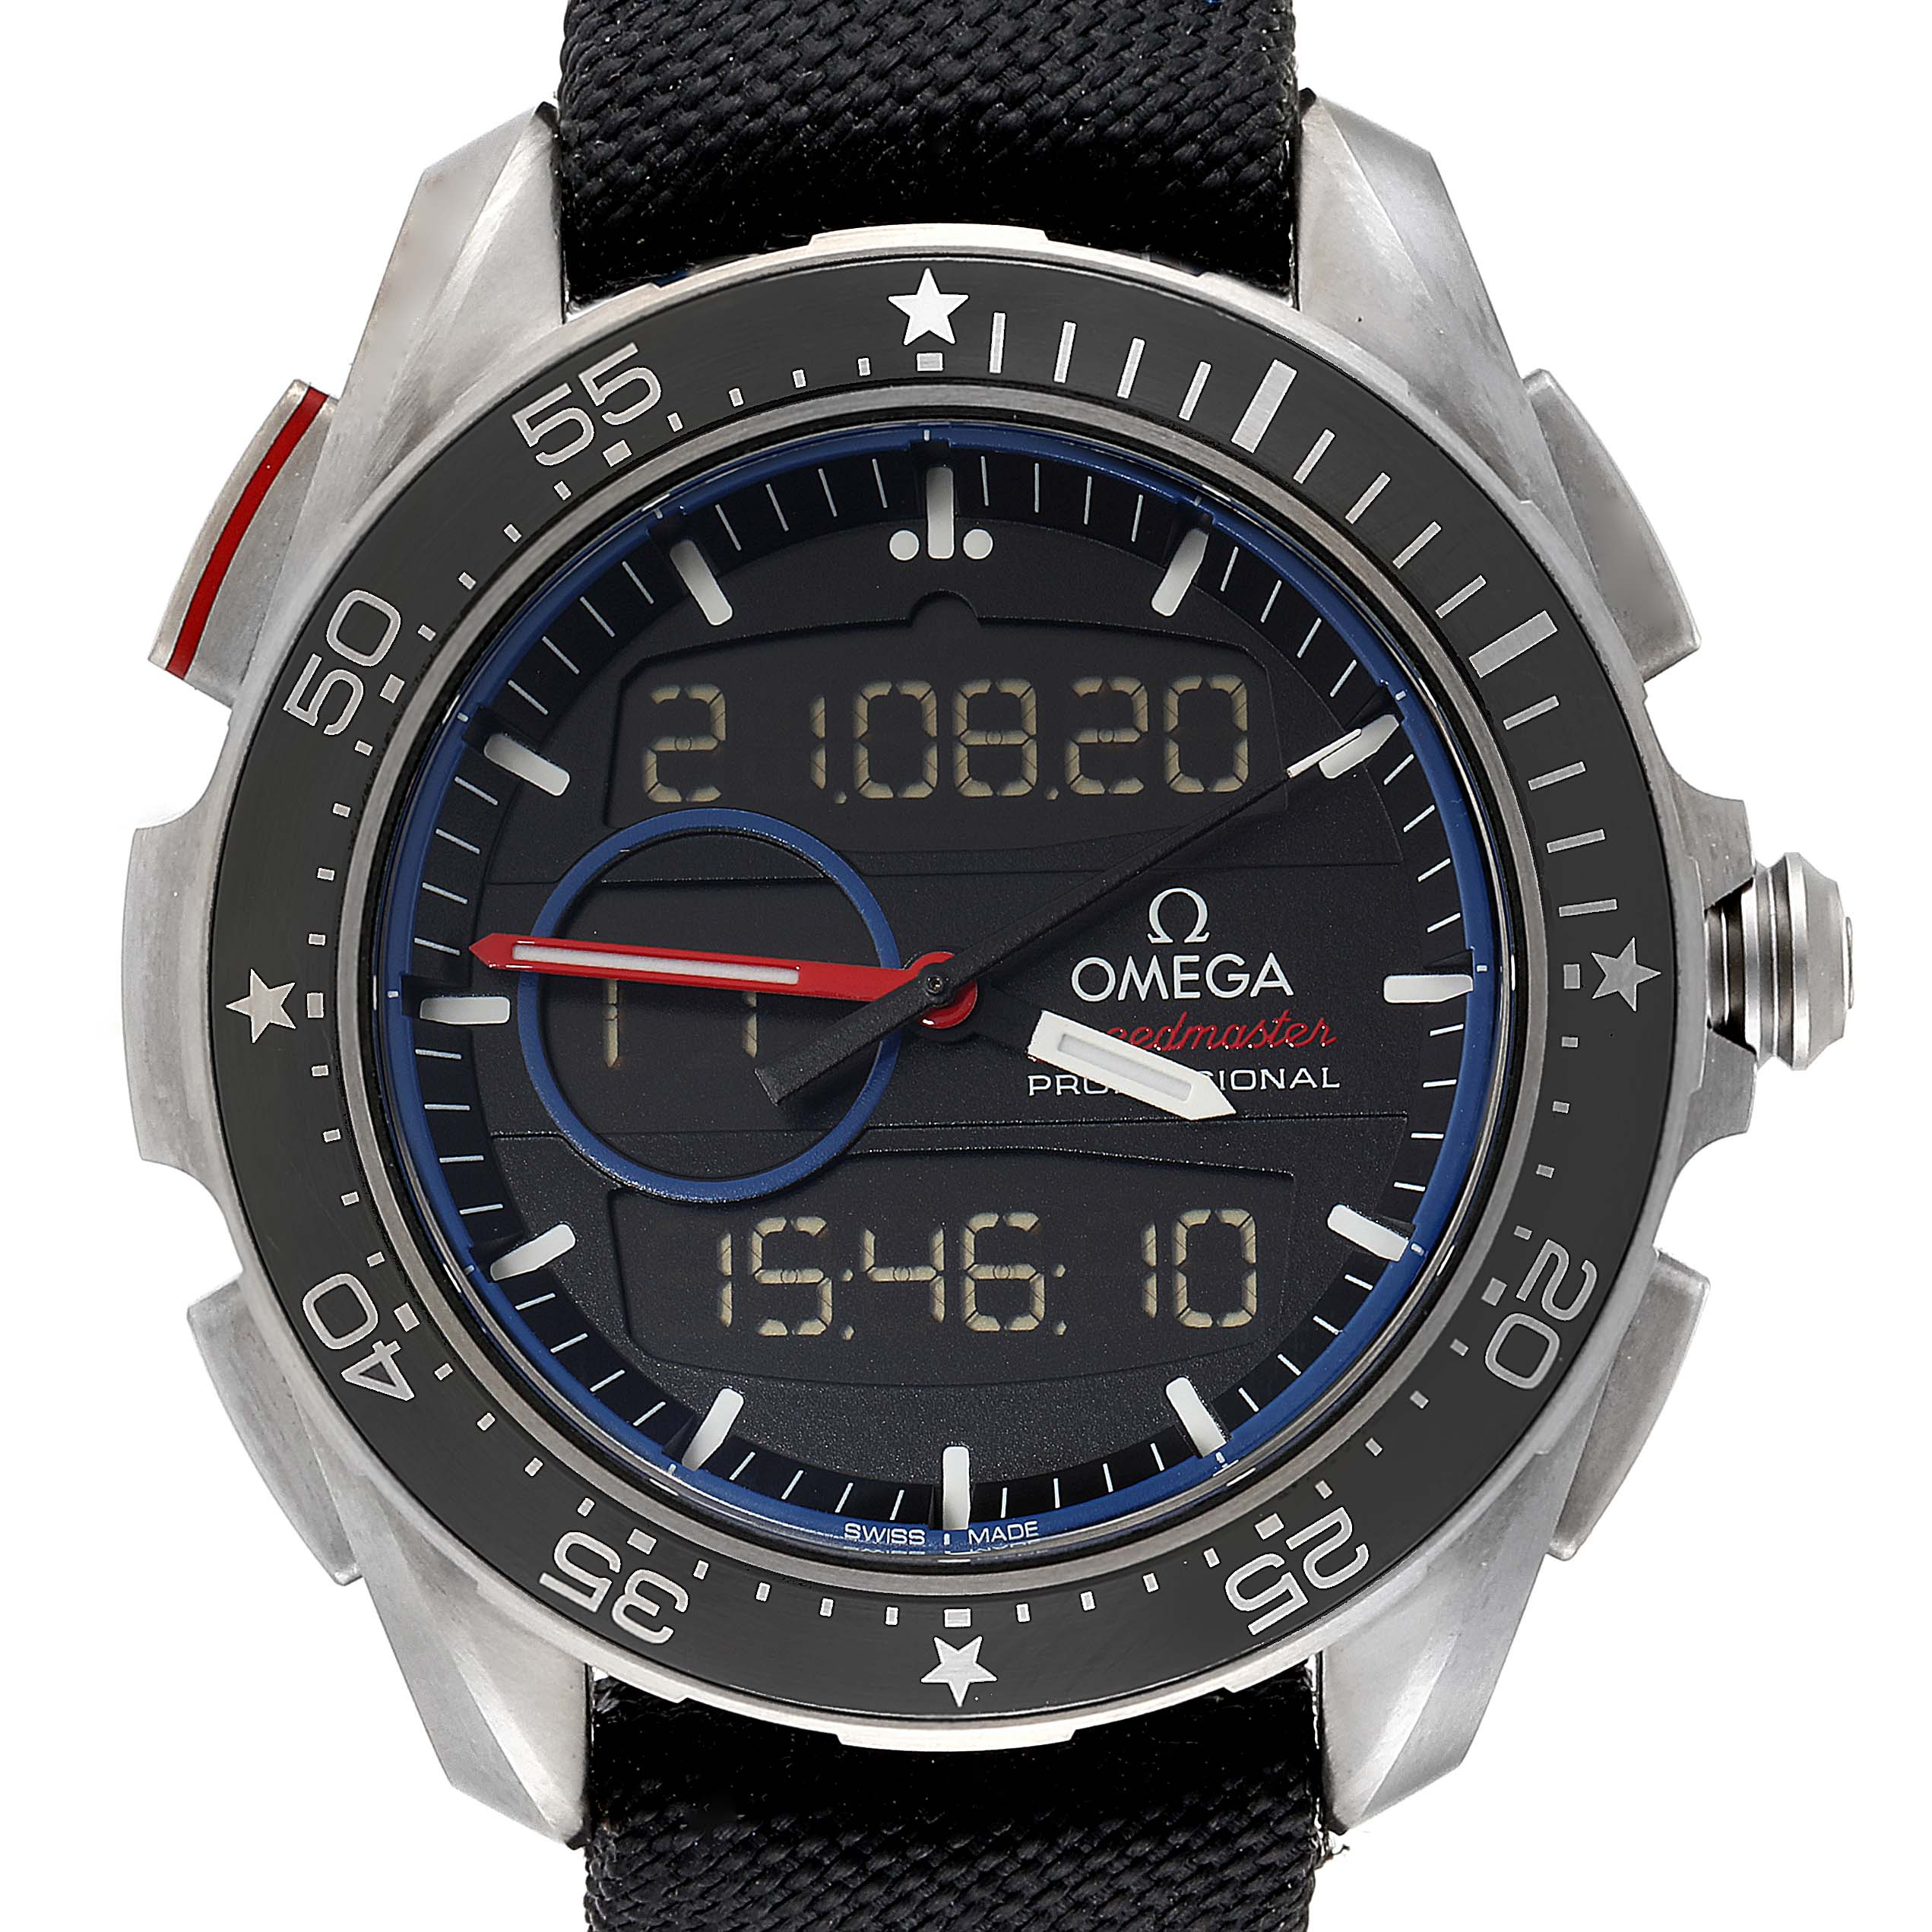 Photo of Omega Seamaster Regatta X‑33 ETNZ Titanium Limited Watch 318.92.45.79.01.001